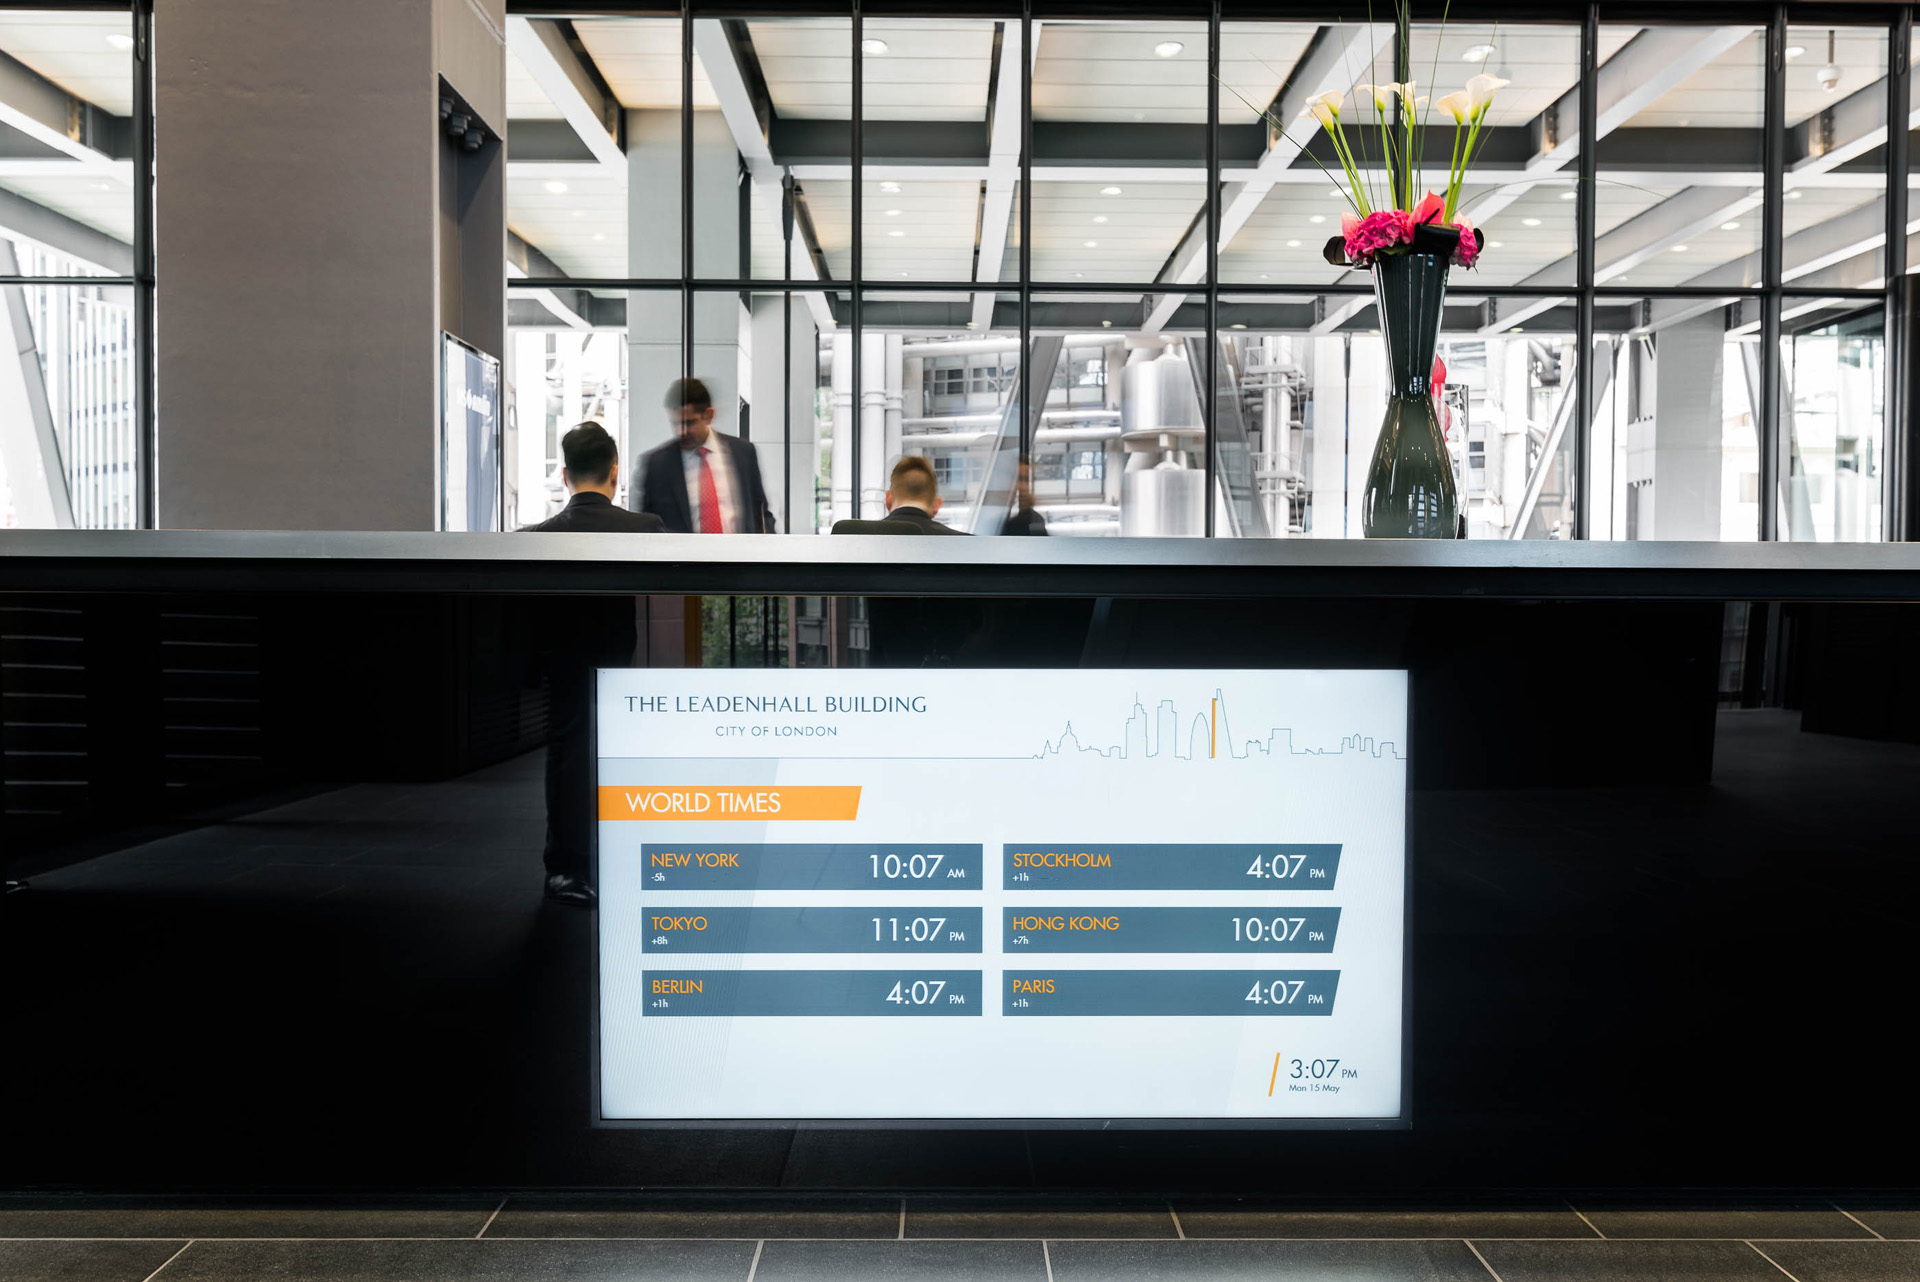 Dynamic world times on digital signage at The Leadenhall Building